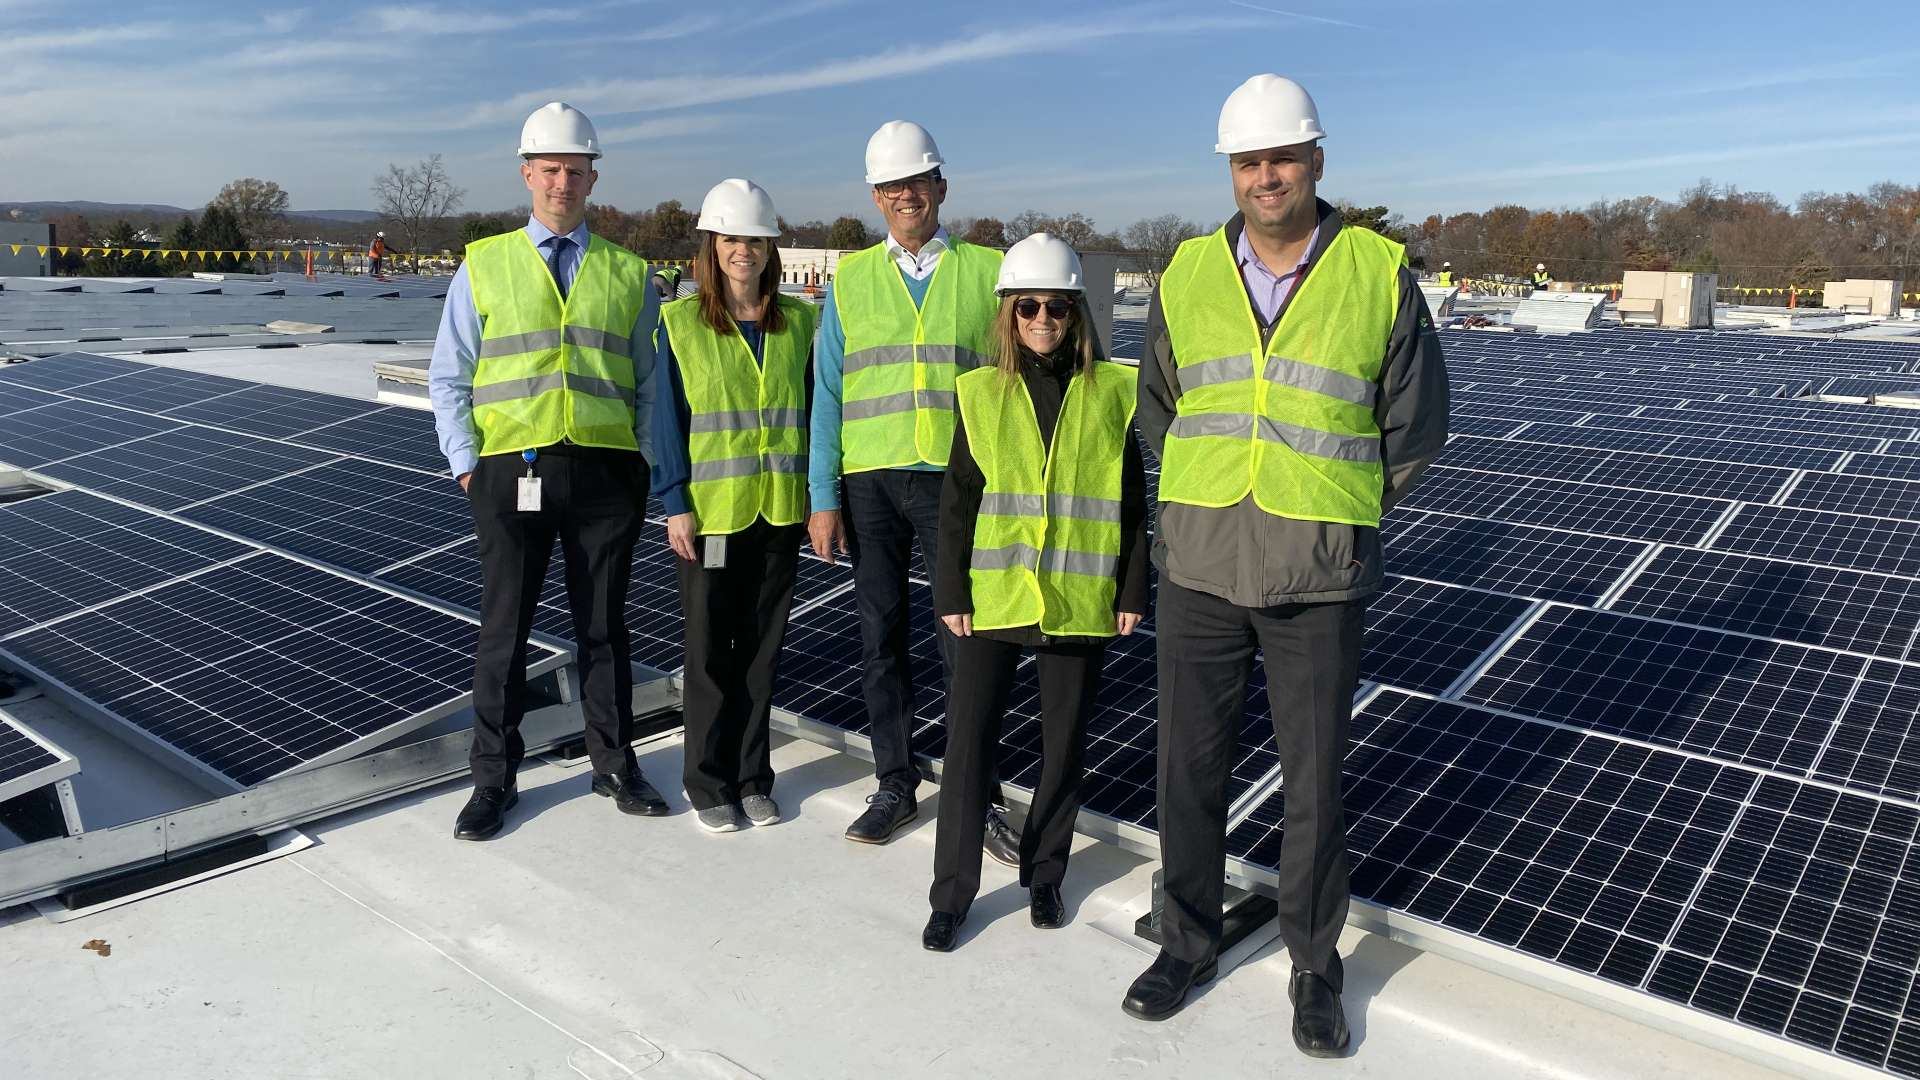 Completion of solar panel installation at LTS Corp. | LTS